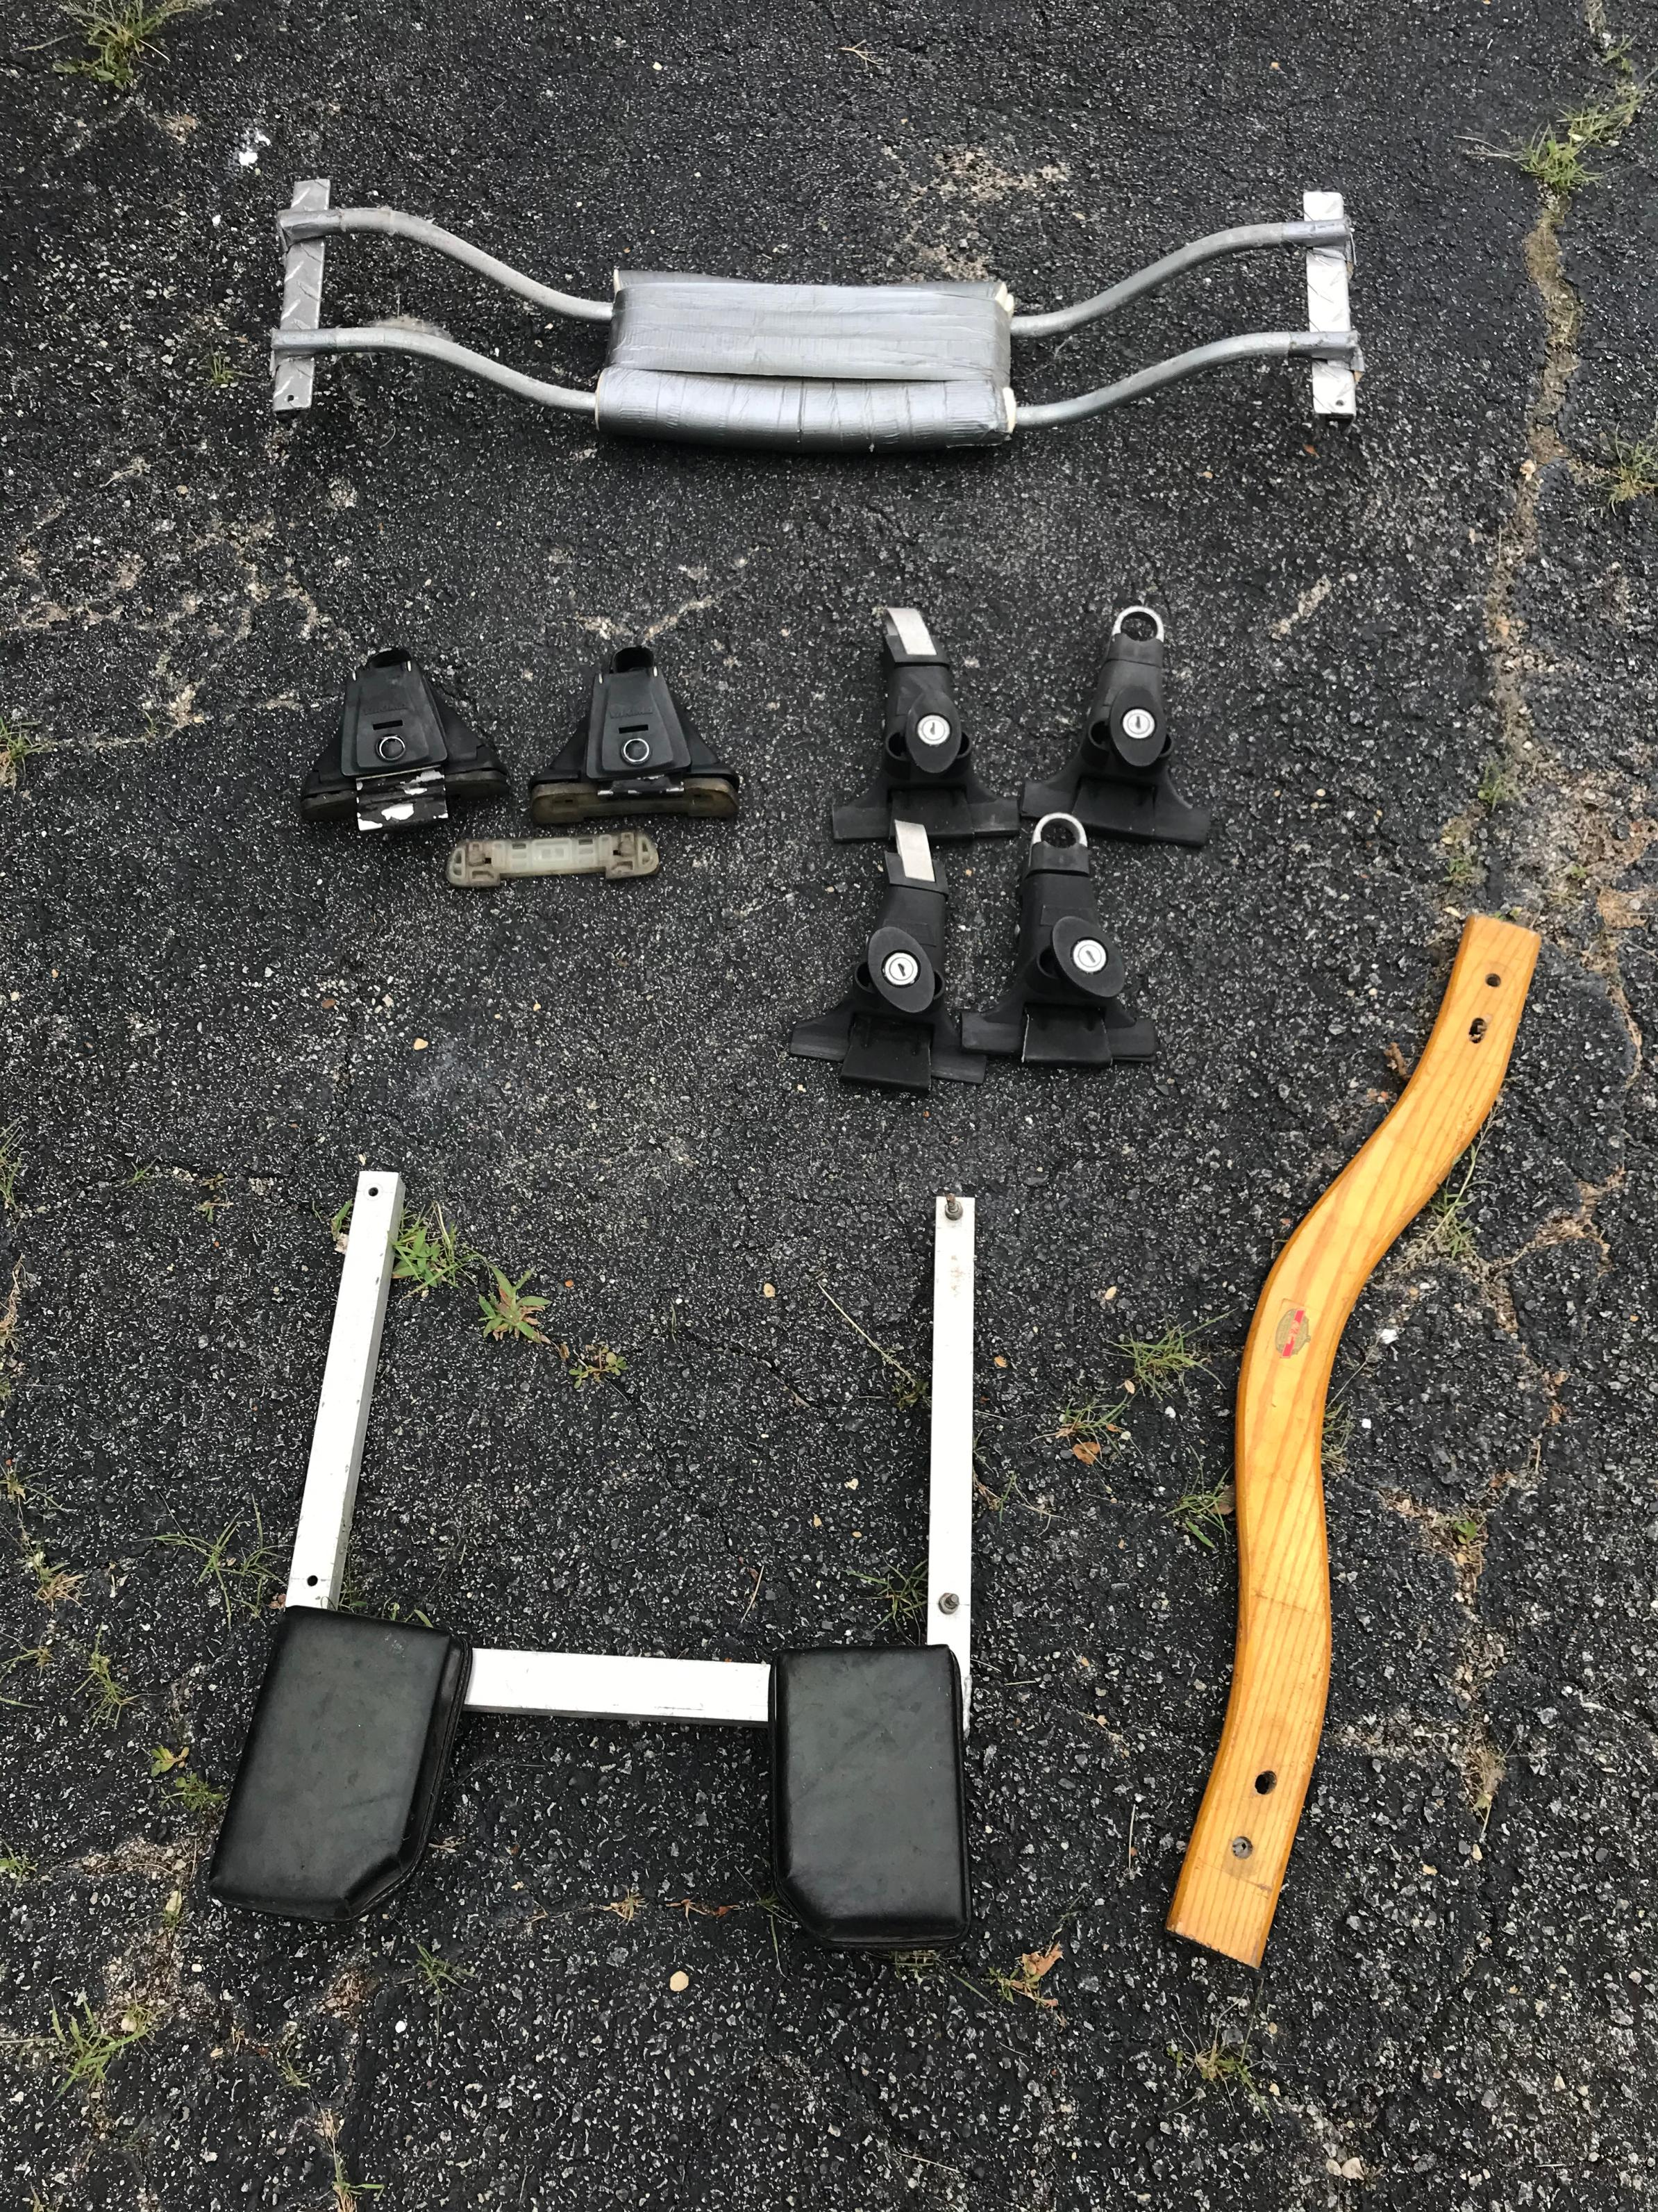 Bwca Free Equipment Boundary Waters Items For Sale Or Wanted